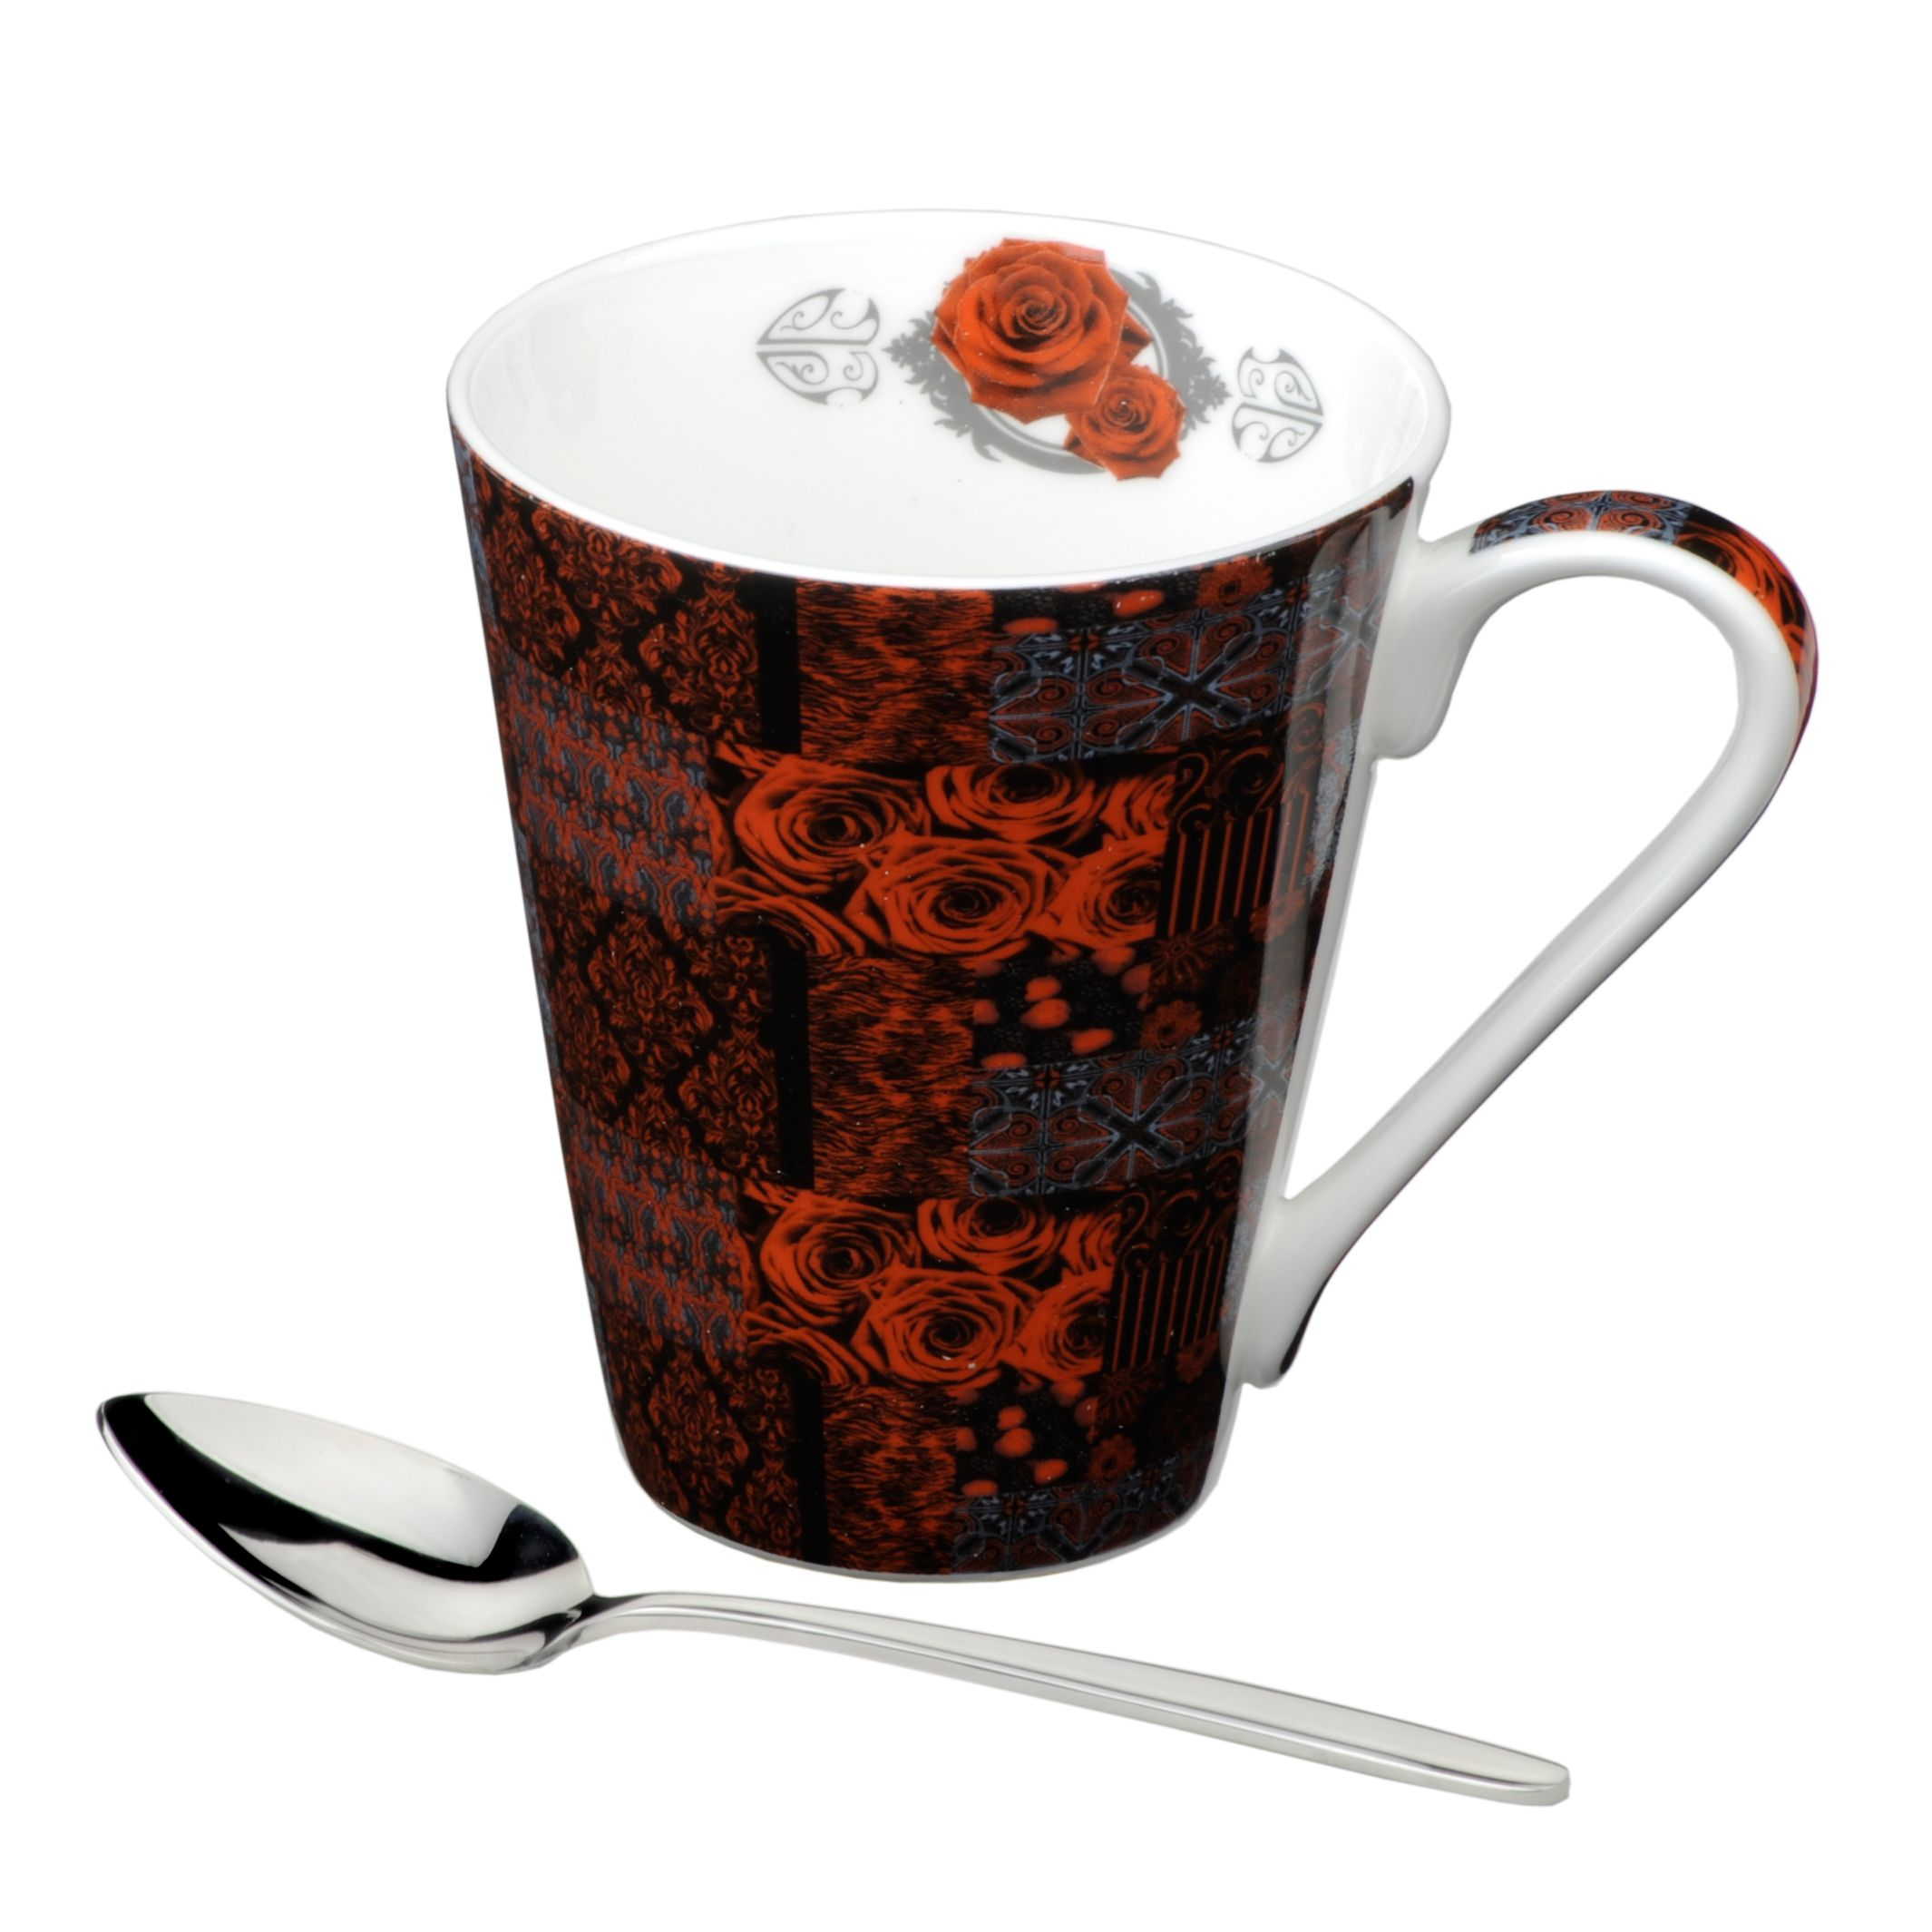 Llewelyn Bowen bone china mug & spoon Risque